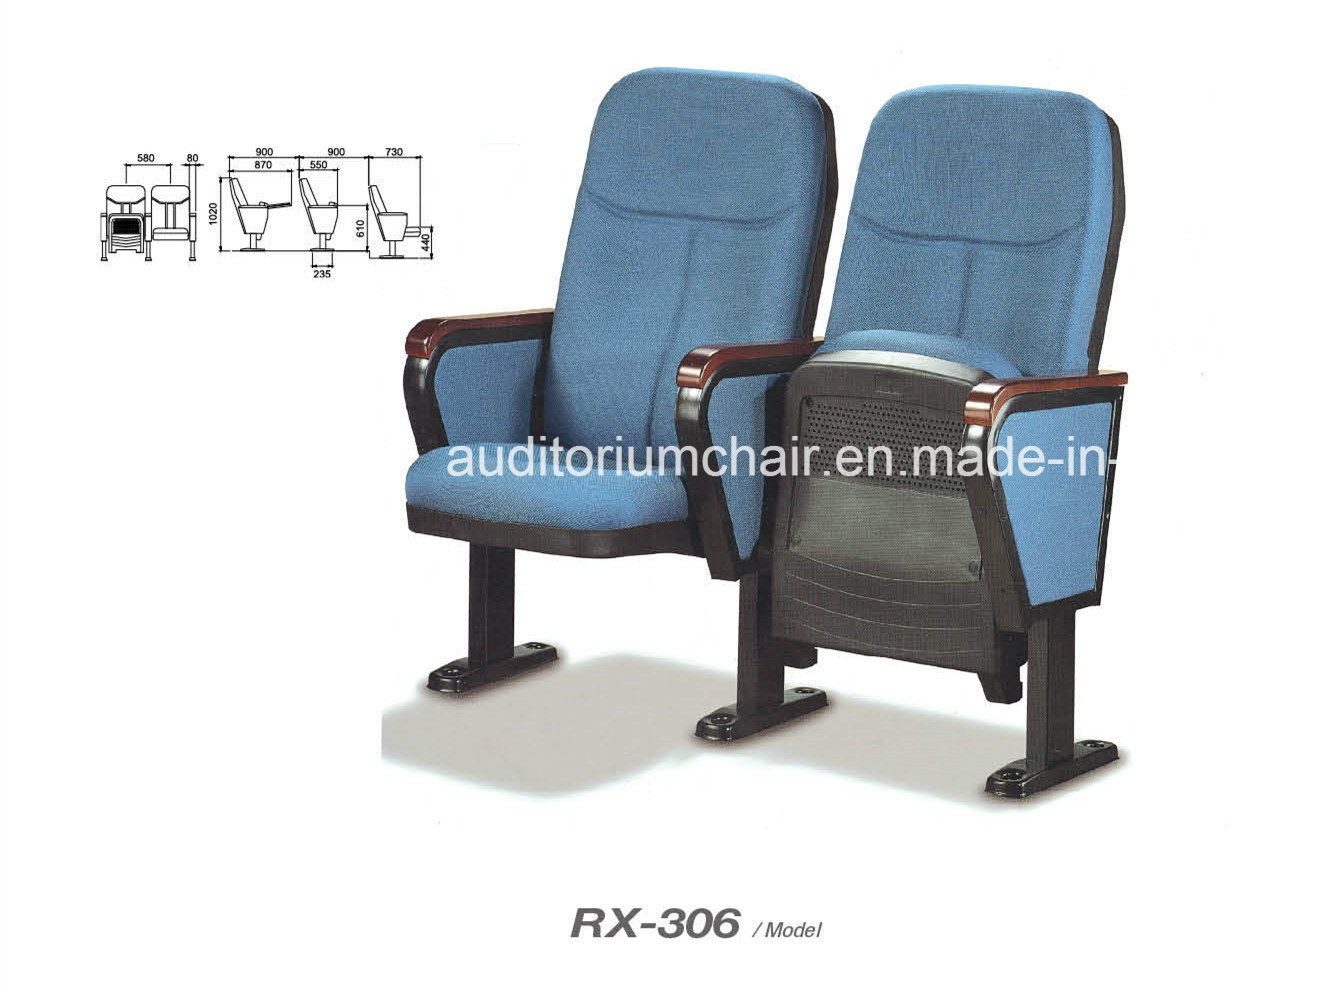 High-Quality Polypropylene Seat Cover Auditorium Chair (RX-306)